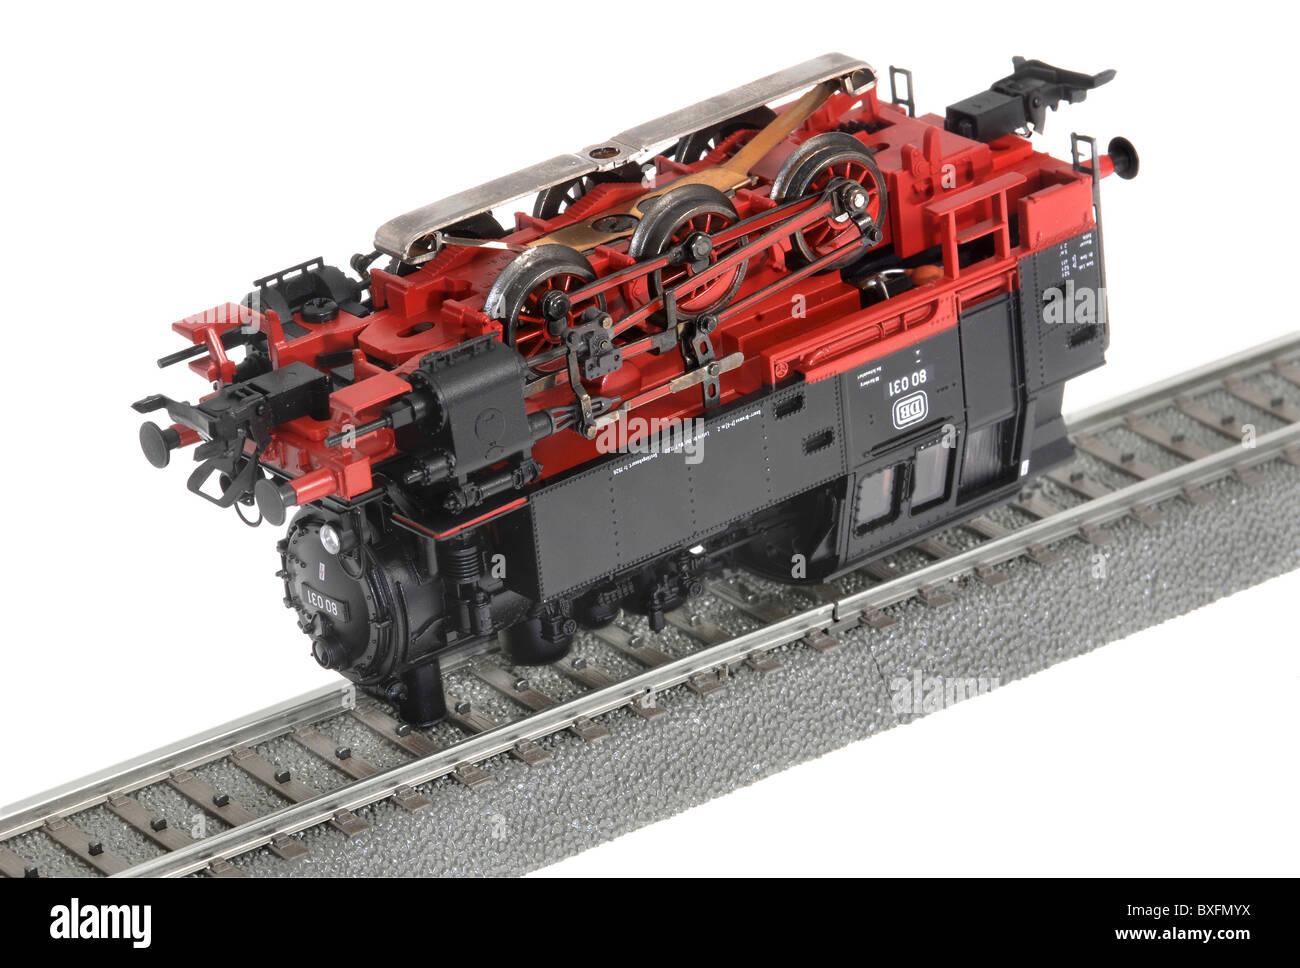 toy, model railway, Märklin steam locomotive, upside down, Germany, 1990s, 90s, 20th century, historic, historical, - Stock Image